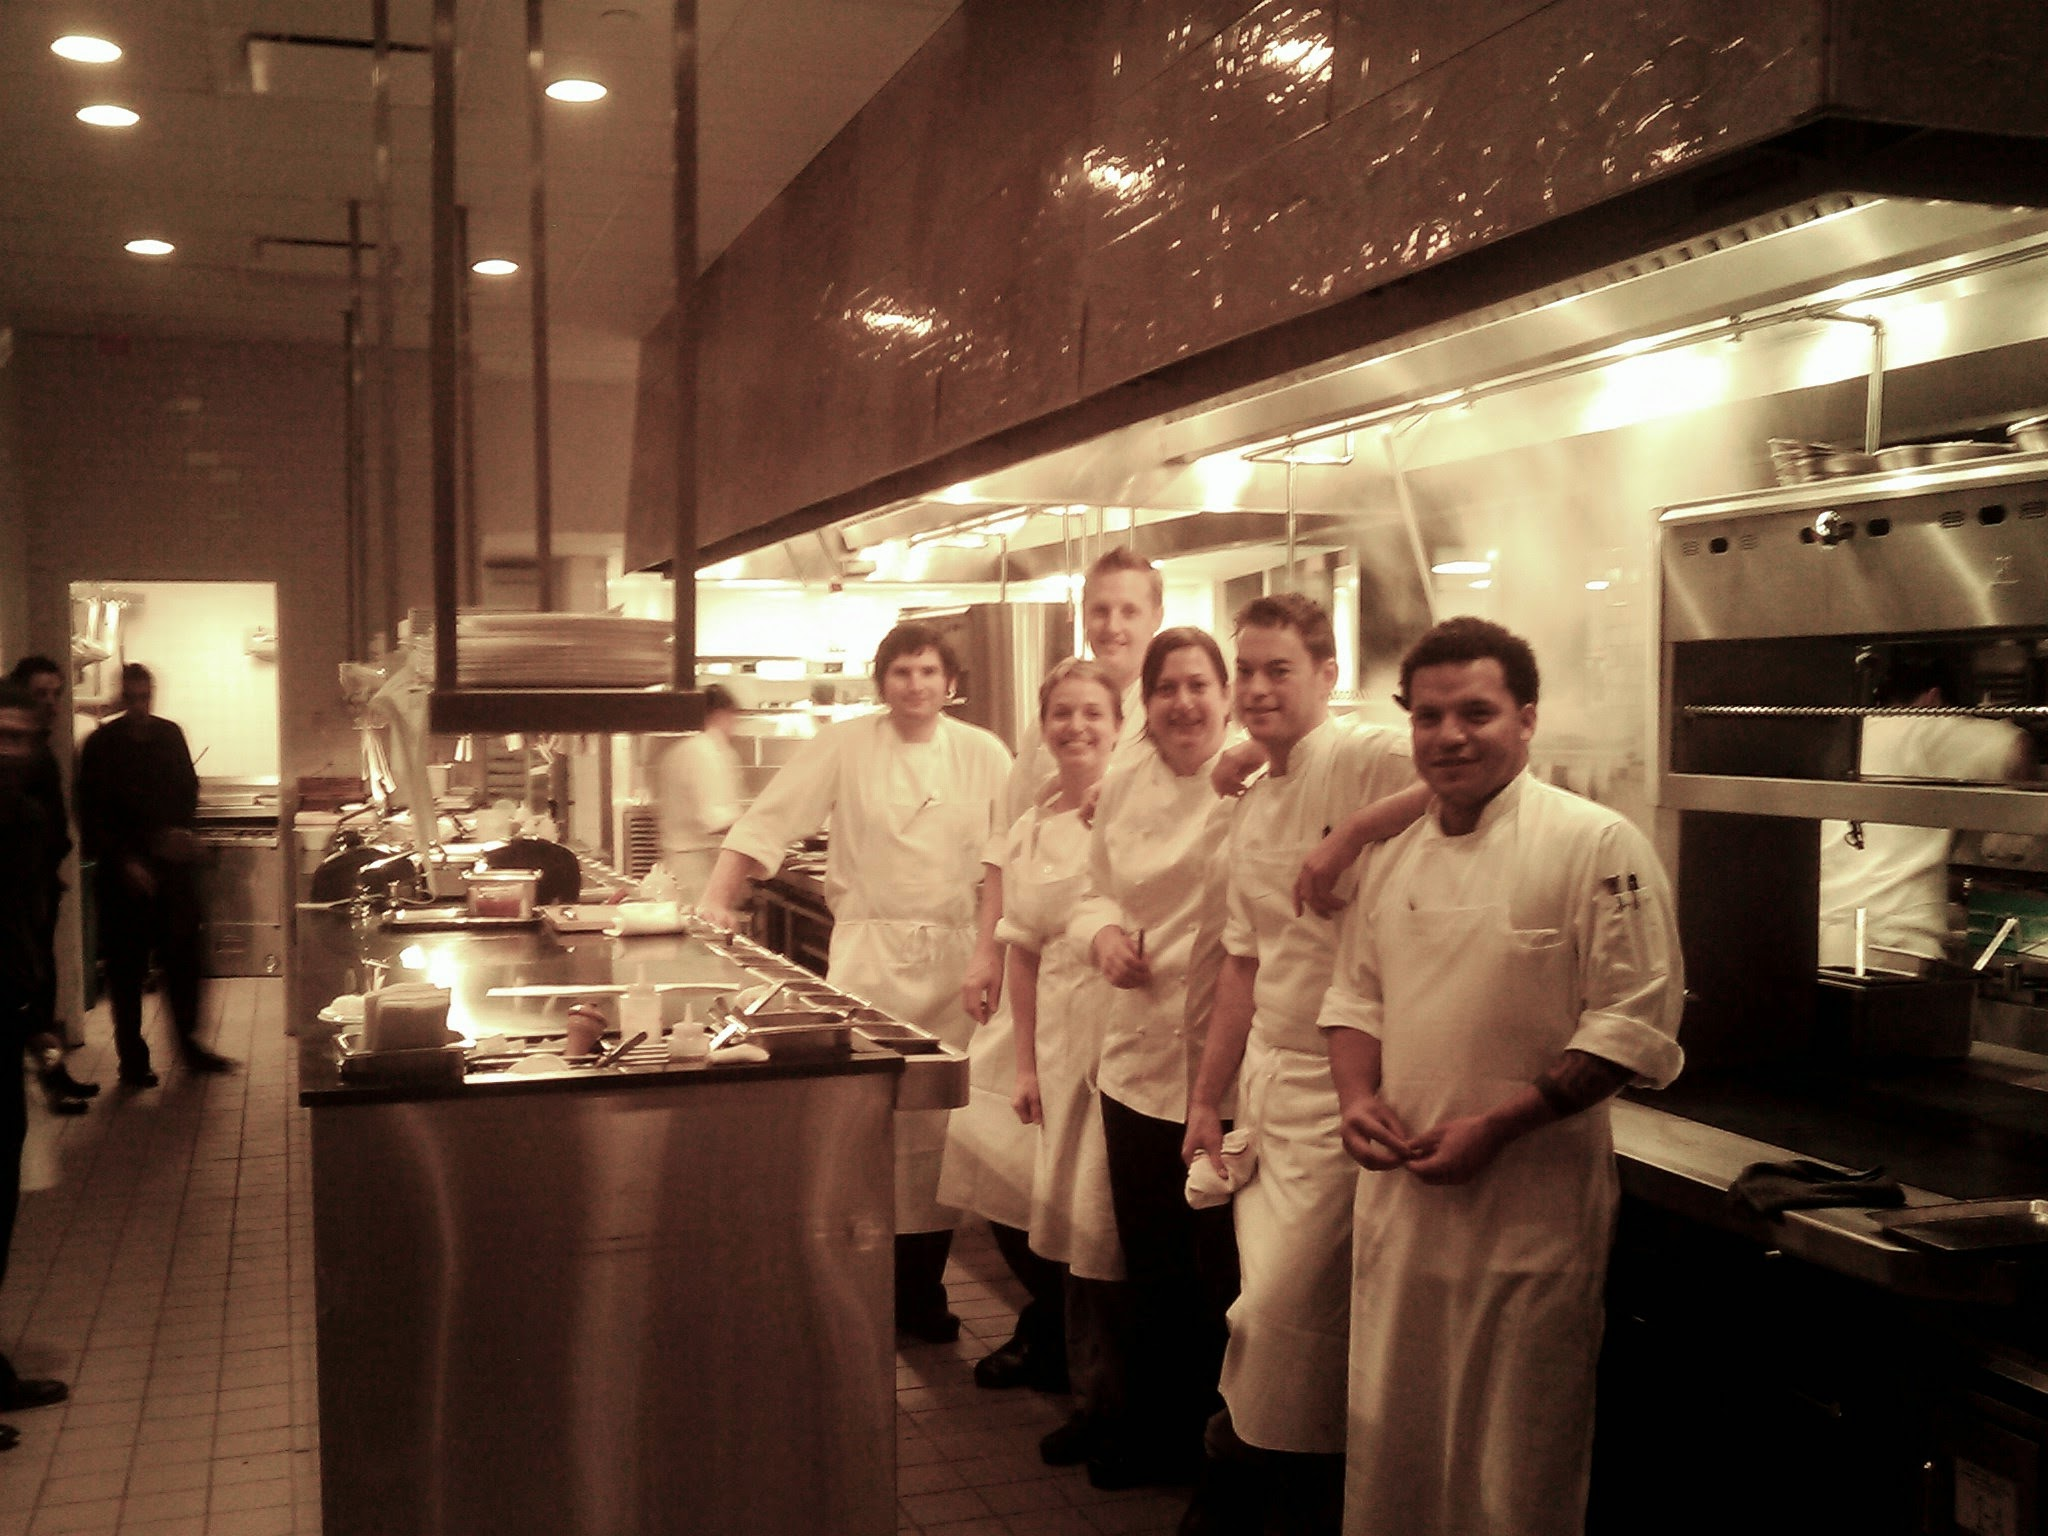 Chef Missy Robbins and team at A Voce